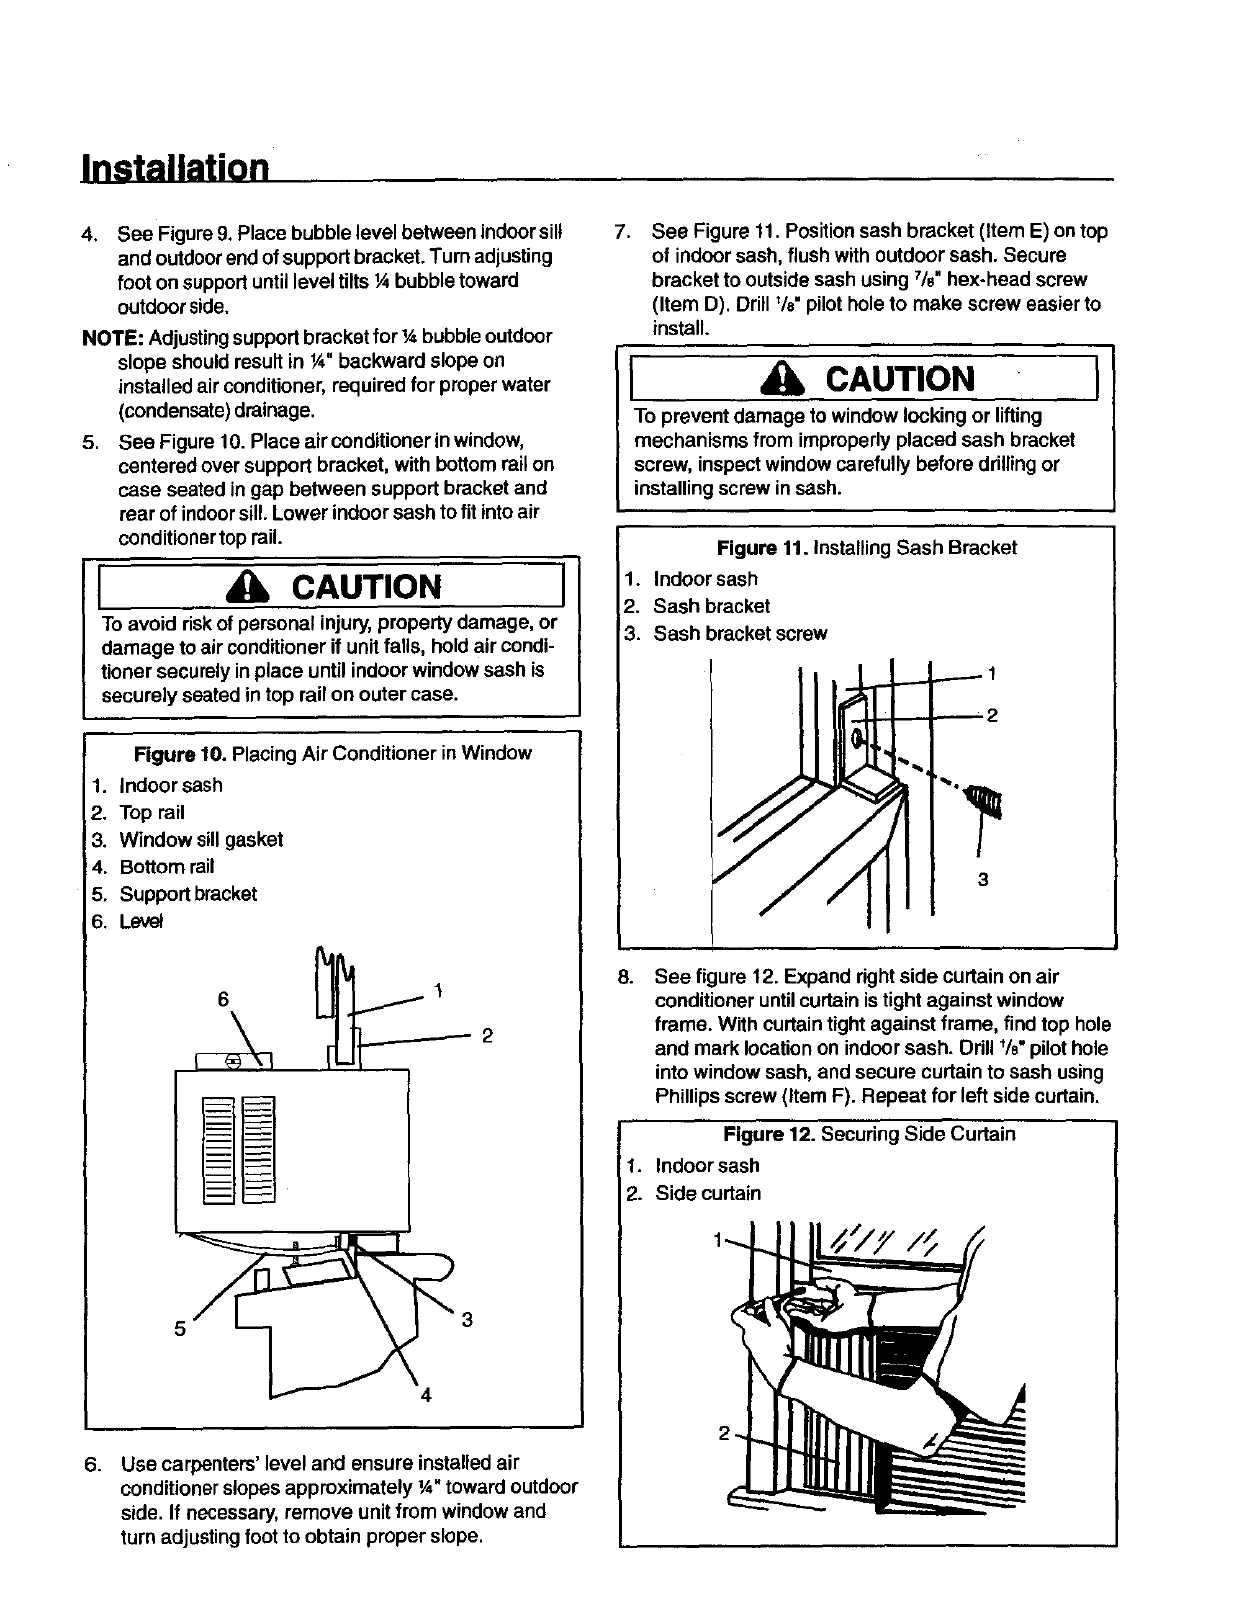 Air conditioner installation air conditioner installation pdf images of air conditioner installation pdf fandeluxe Image collections